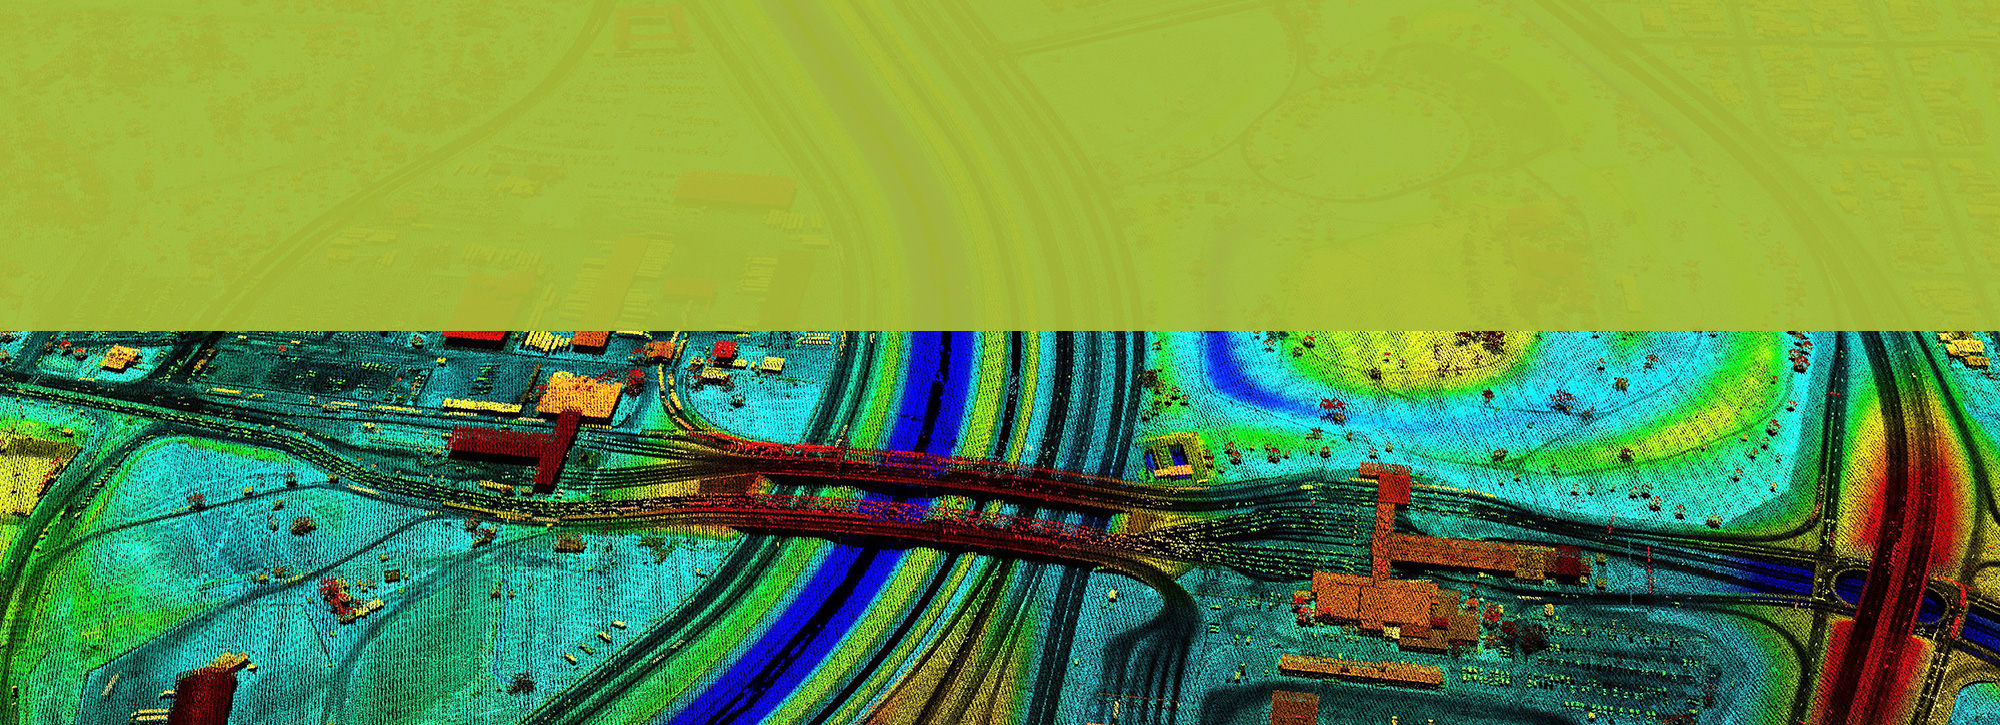 International Lidar Mapping Forum - the lidar & remote